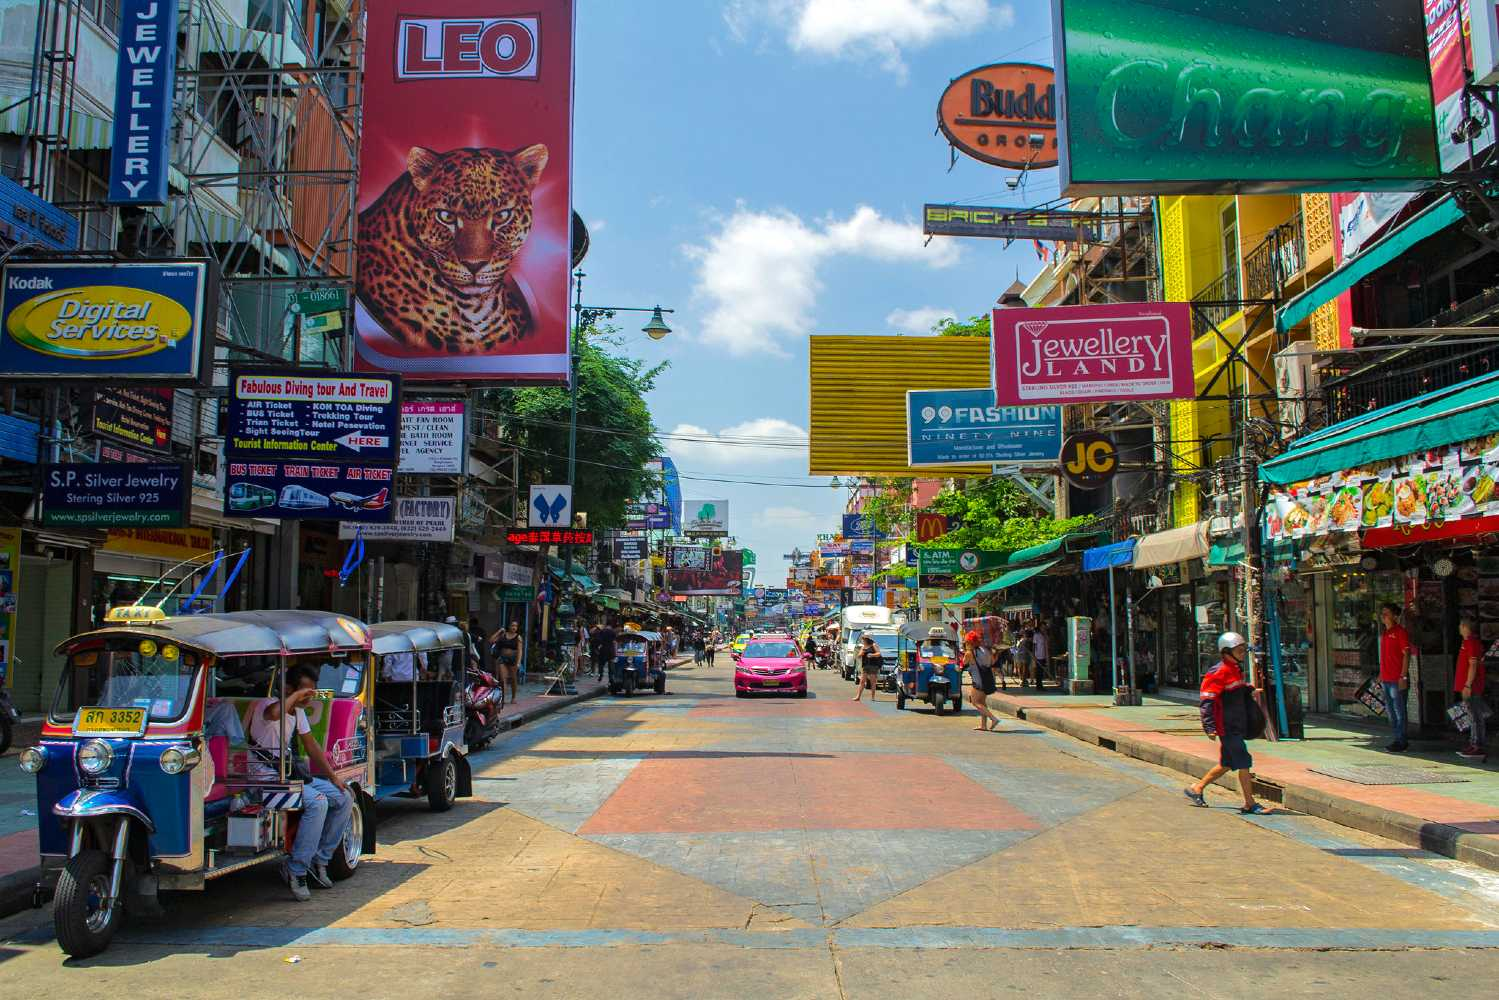 A normal day on Khao San Road